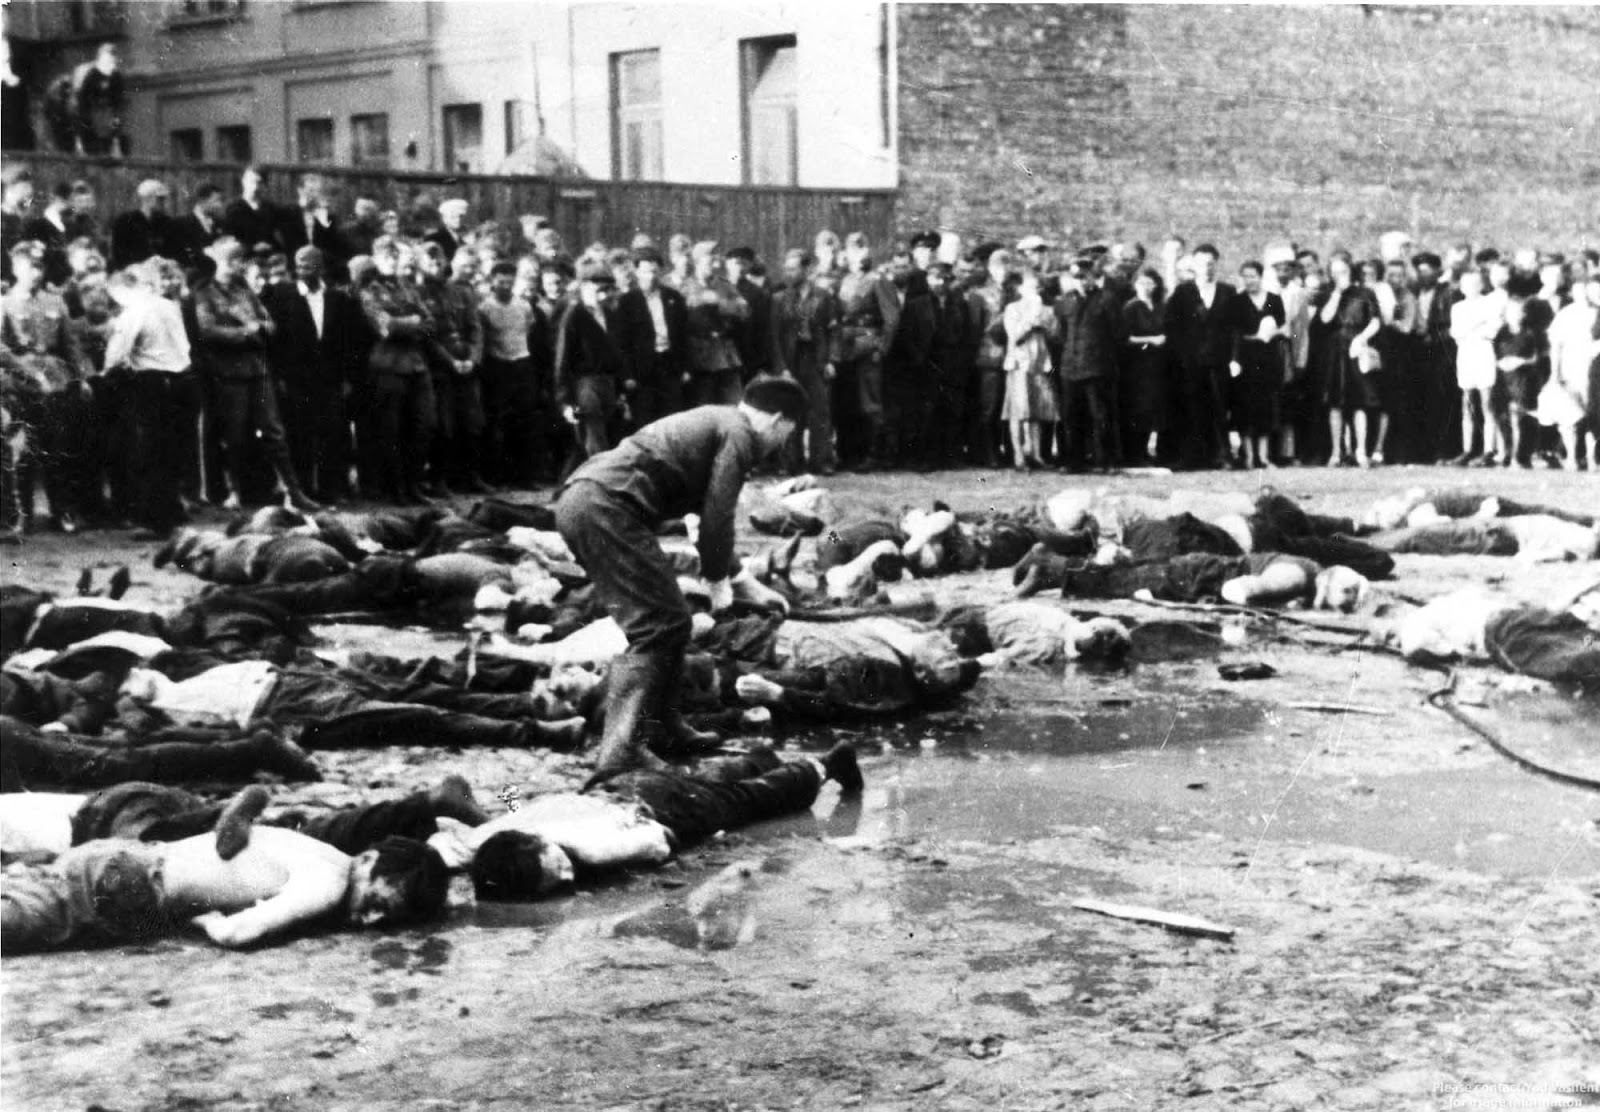 The Kovno Garage Massacre - Lithuanian nationalists clubbing Jewish Lithuanians to death, 1941 (1)